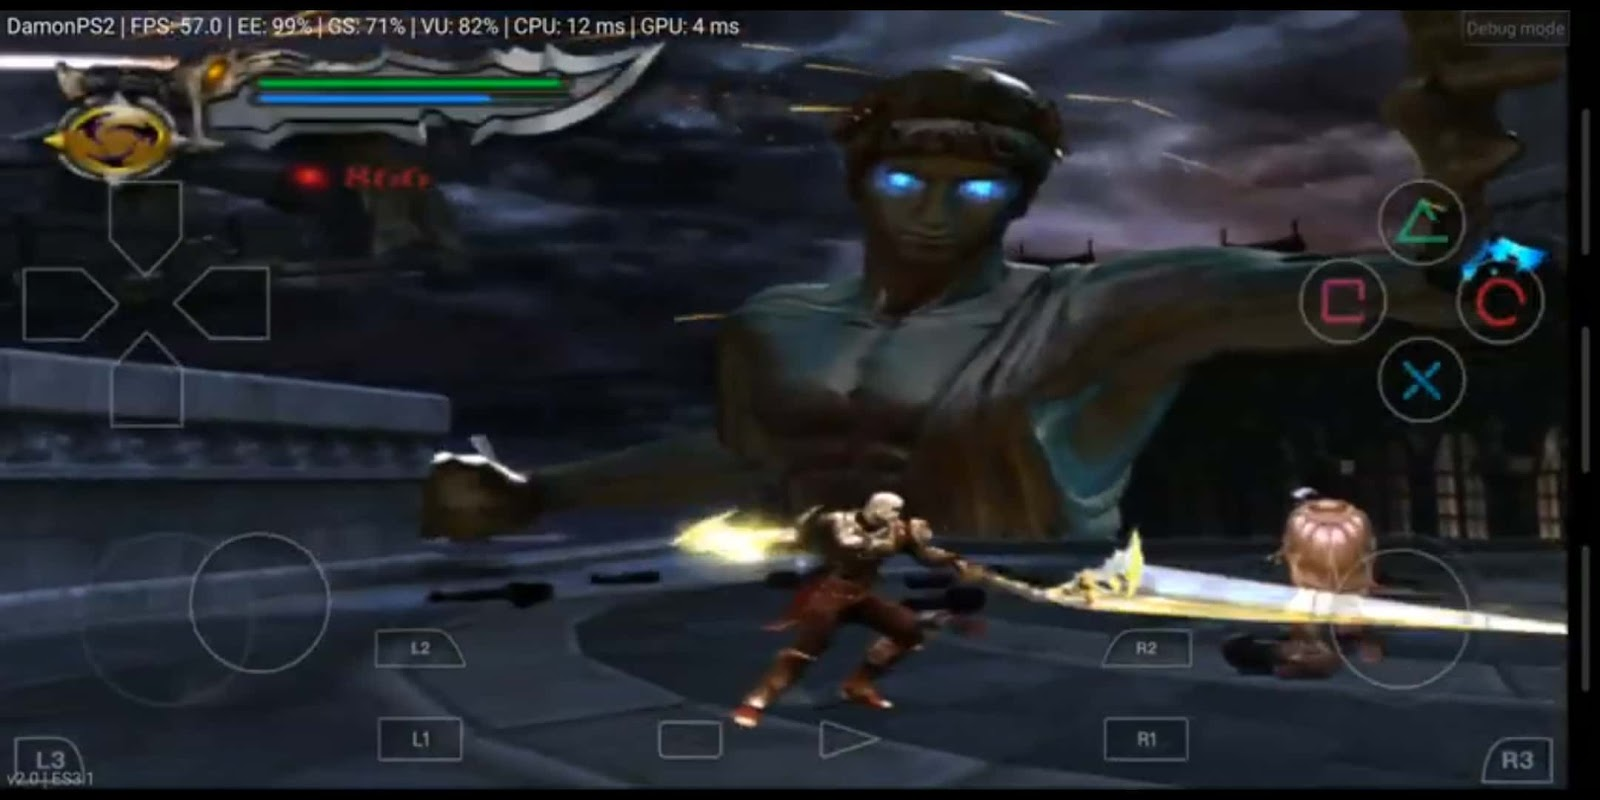 Damon ps2 emulator god of war 2